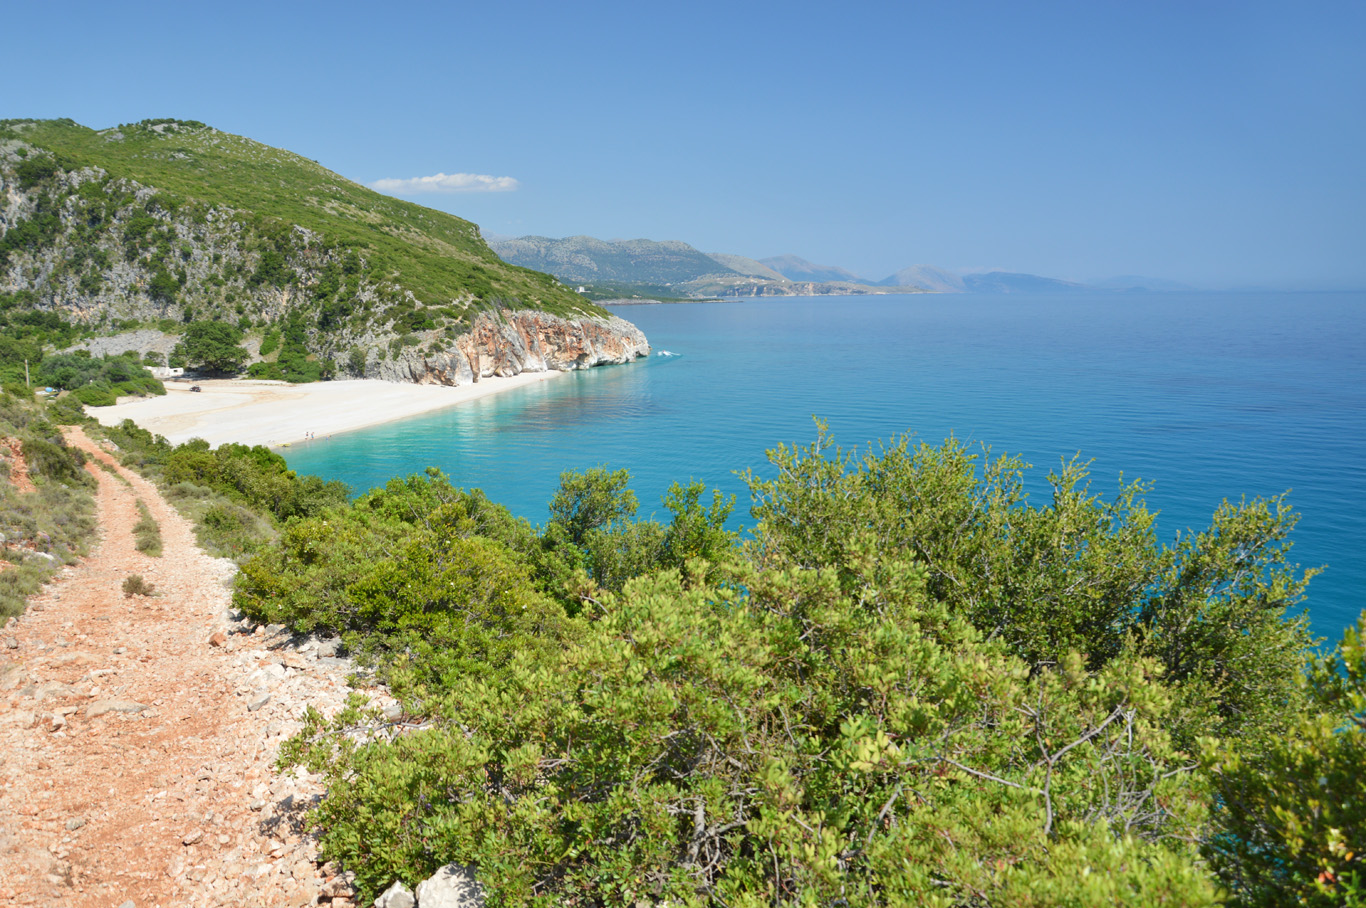 Gjipe beach seen from the trail leading to the main road